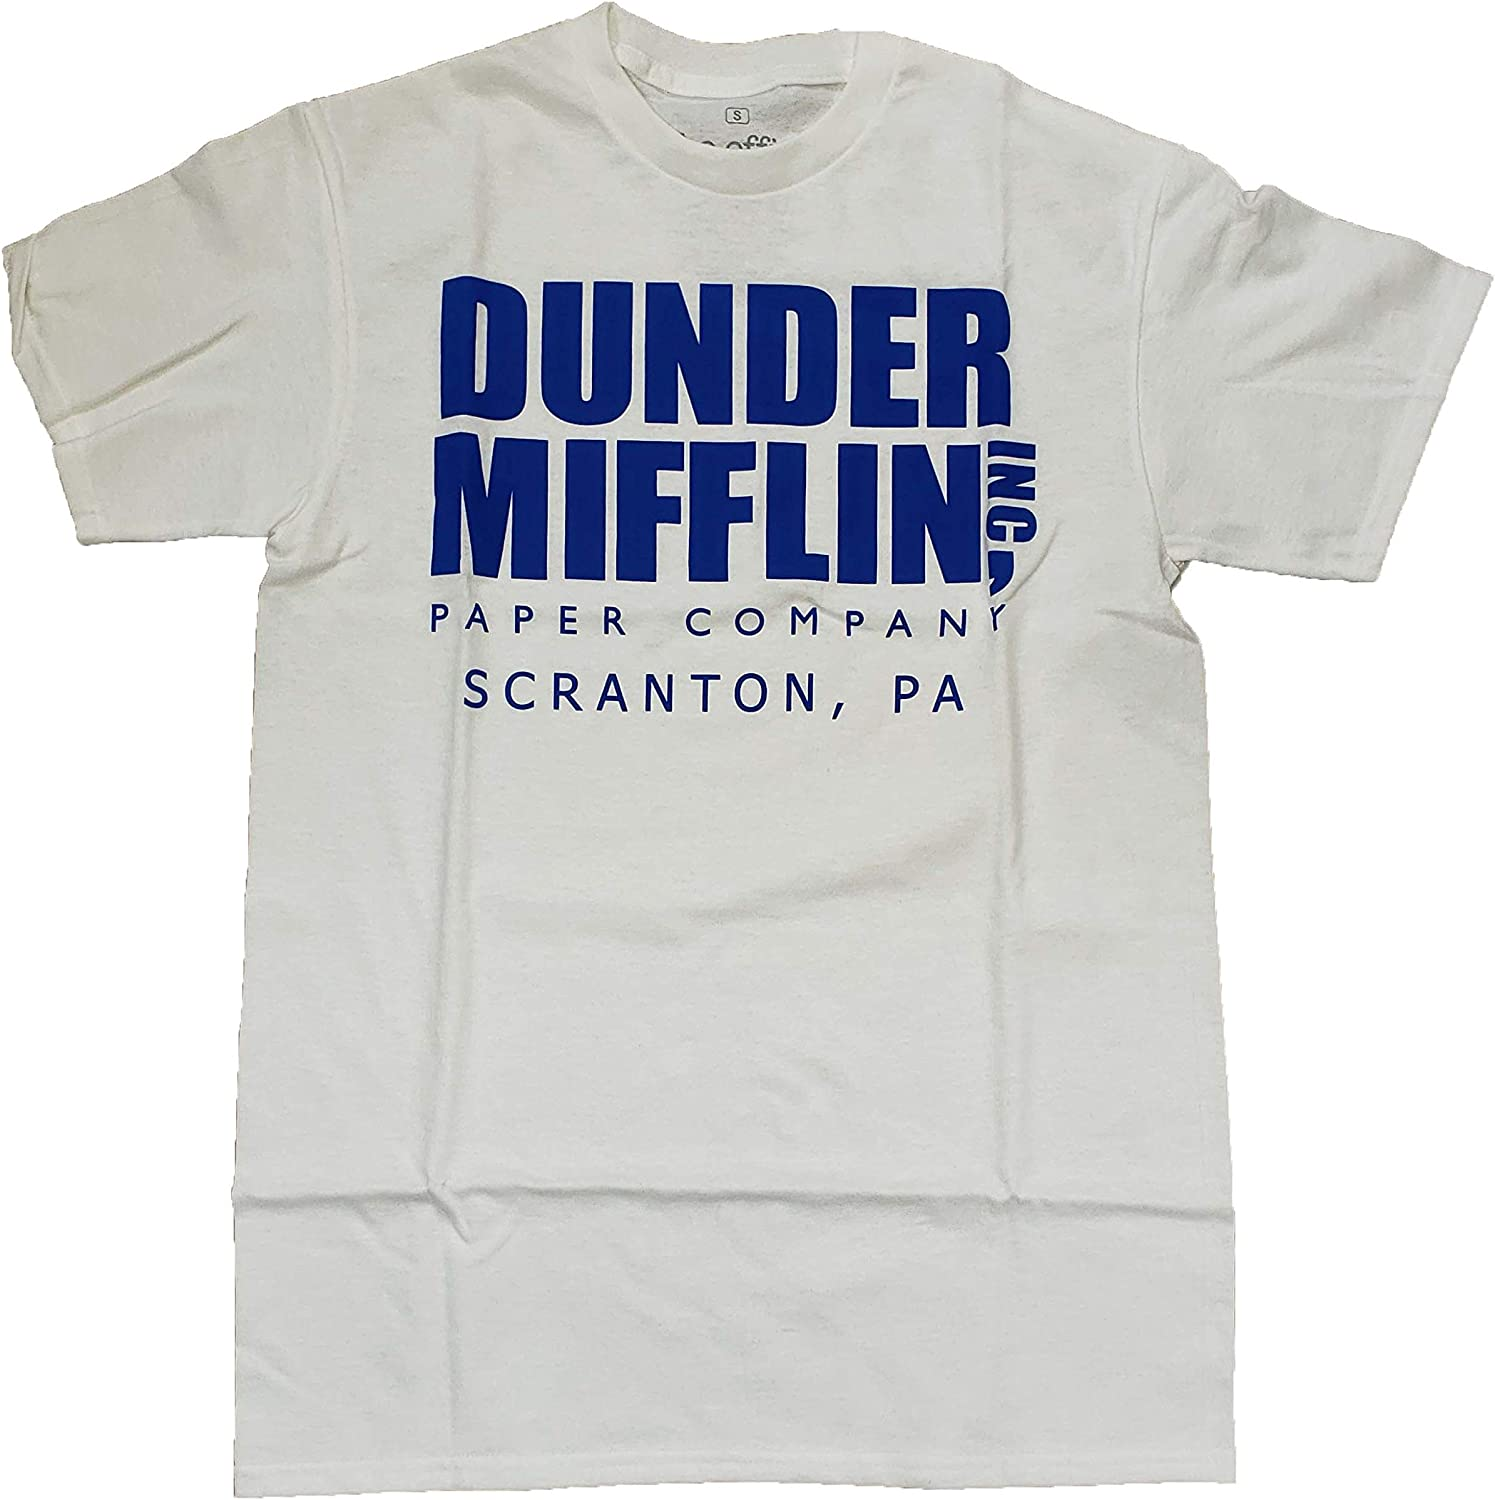 The Office Dunder Mifflin Paper Company White Graphic T-Shirt